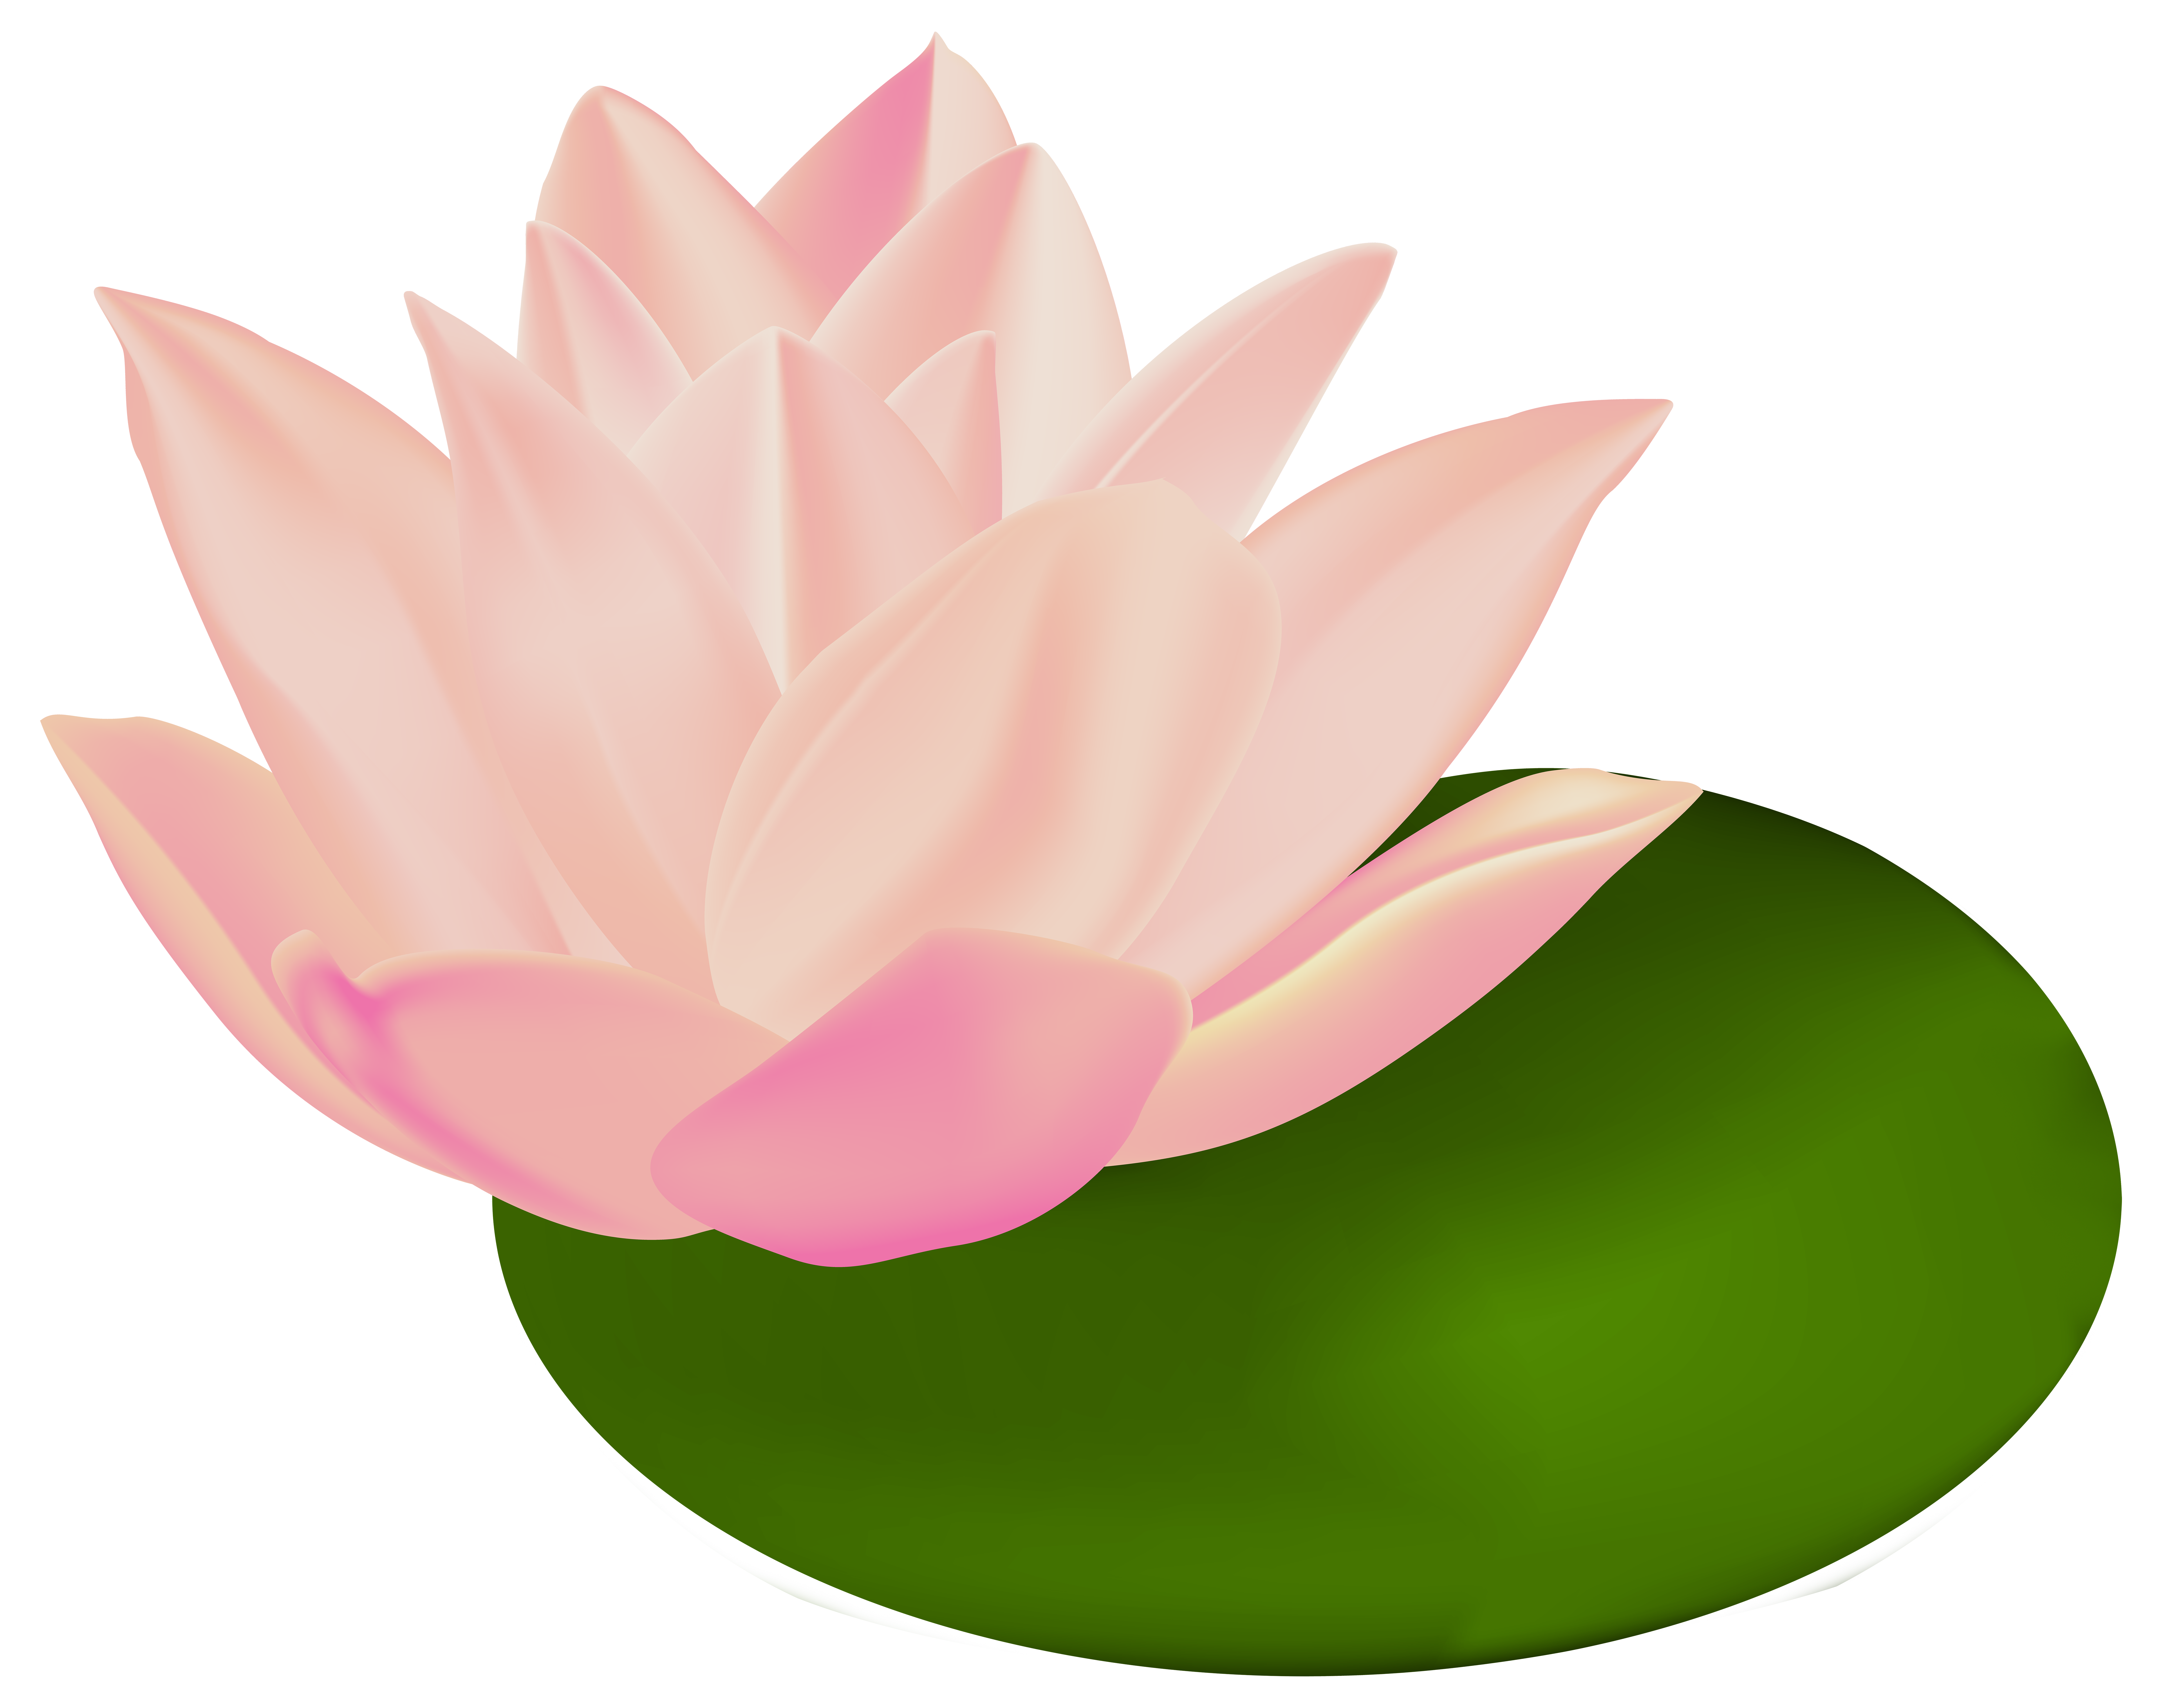 Water lily flower clipart image royalty free stock Water Lily Transparent Clip Art Image | Gallery Yopriceville - High ... image royalty free stock